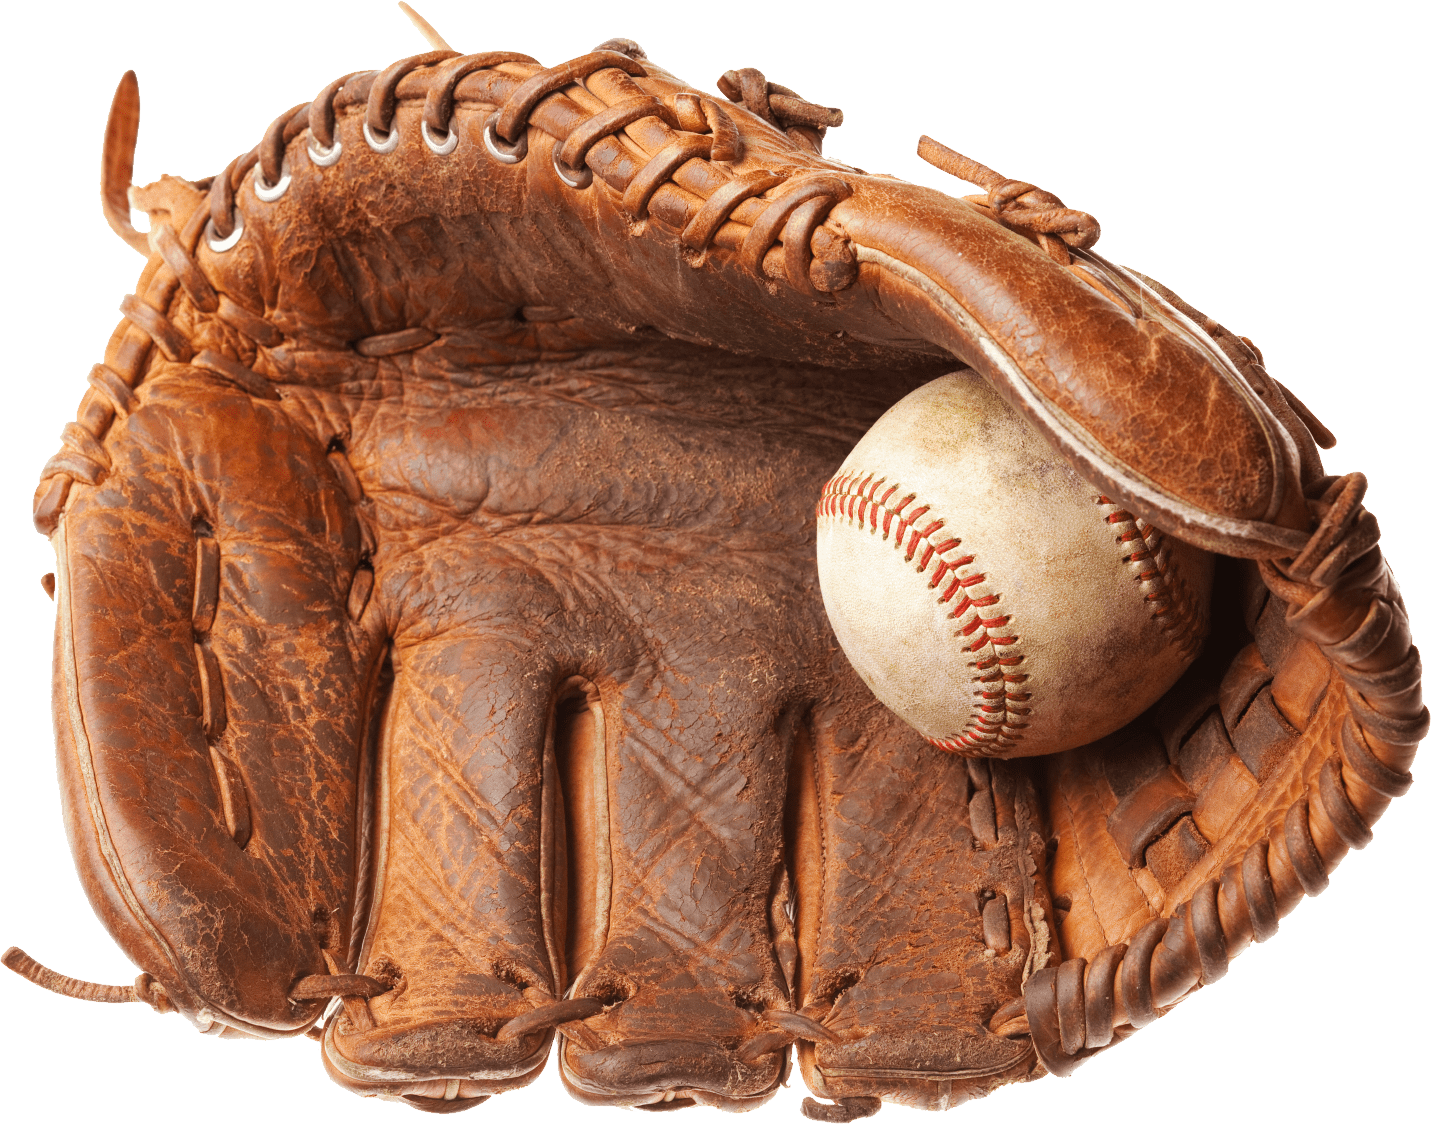 Old baseball clipart stock Vintage Baseball Glove transparent PNG - StickPNG stock